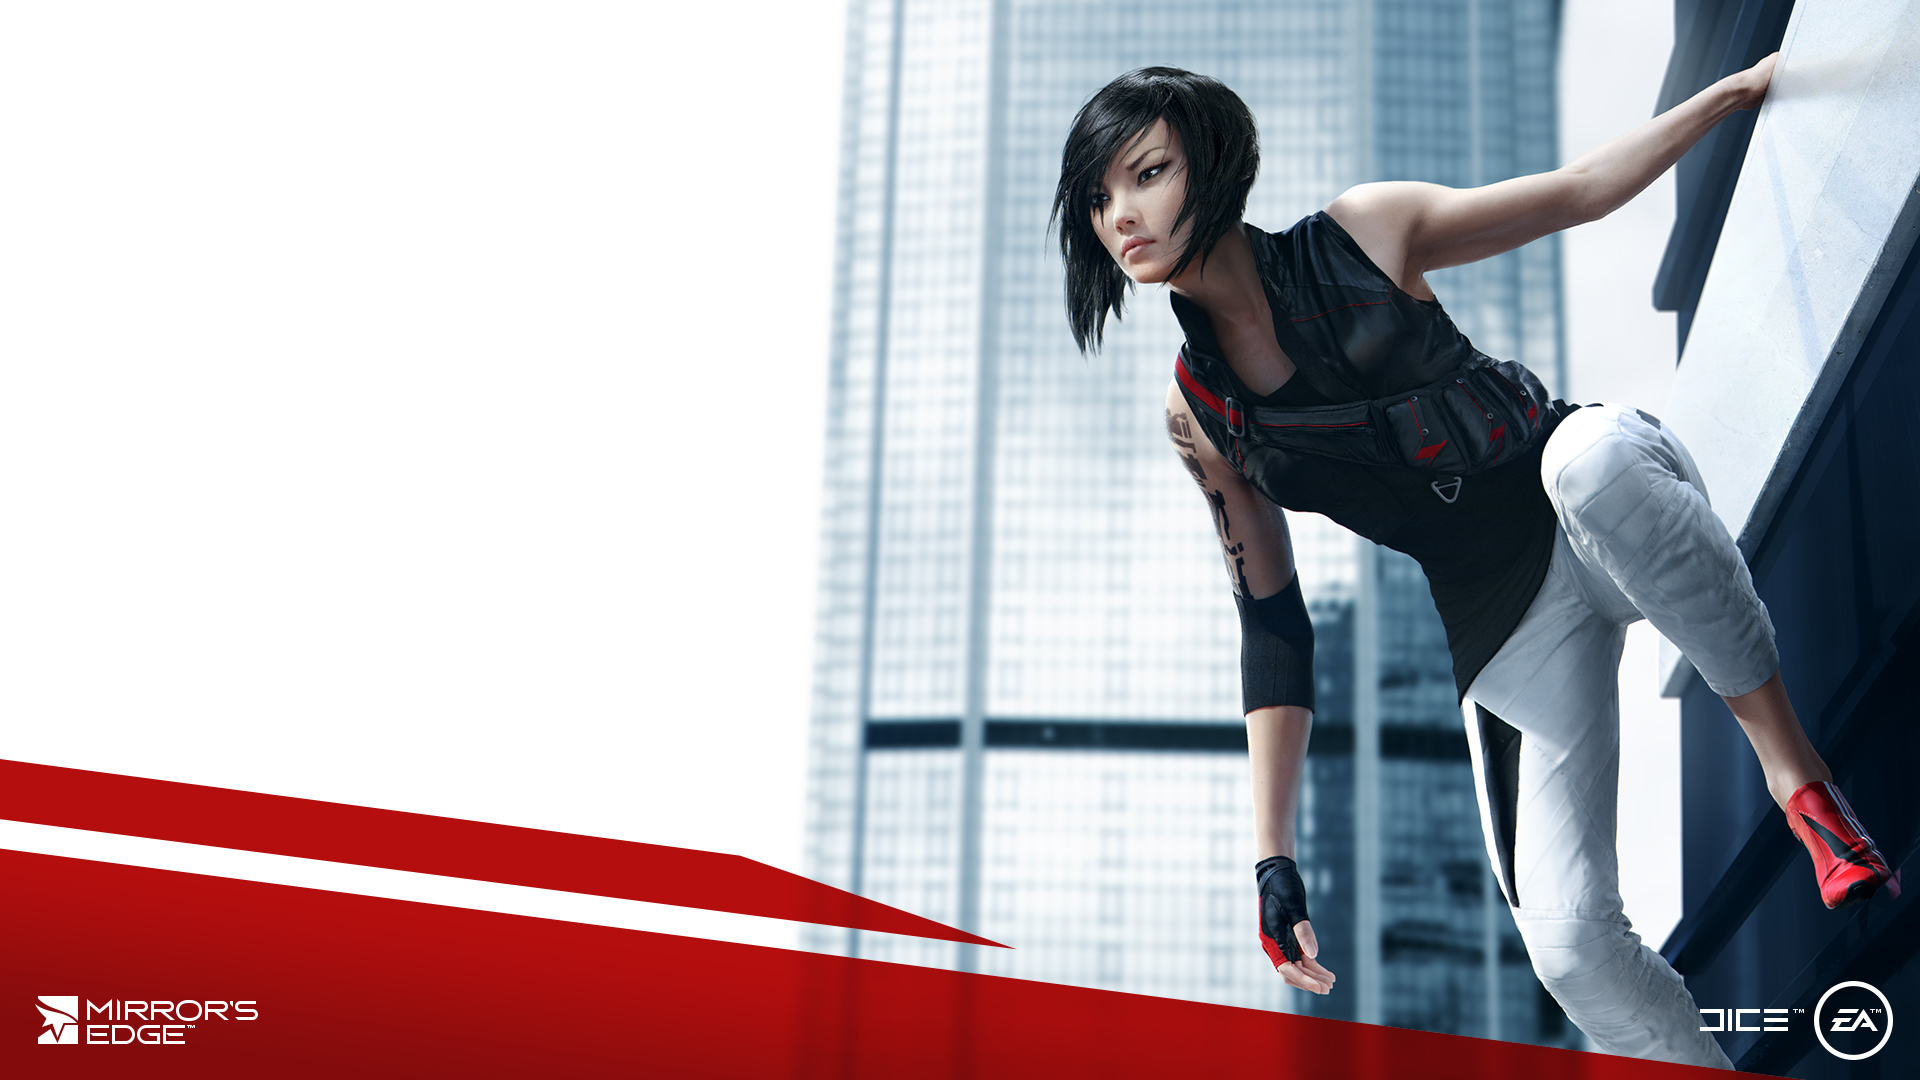 Mirrors Edge 2 Game Wallpapers HD Wallpapers 1920x1080